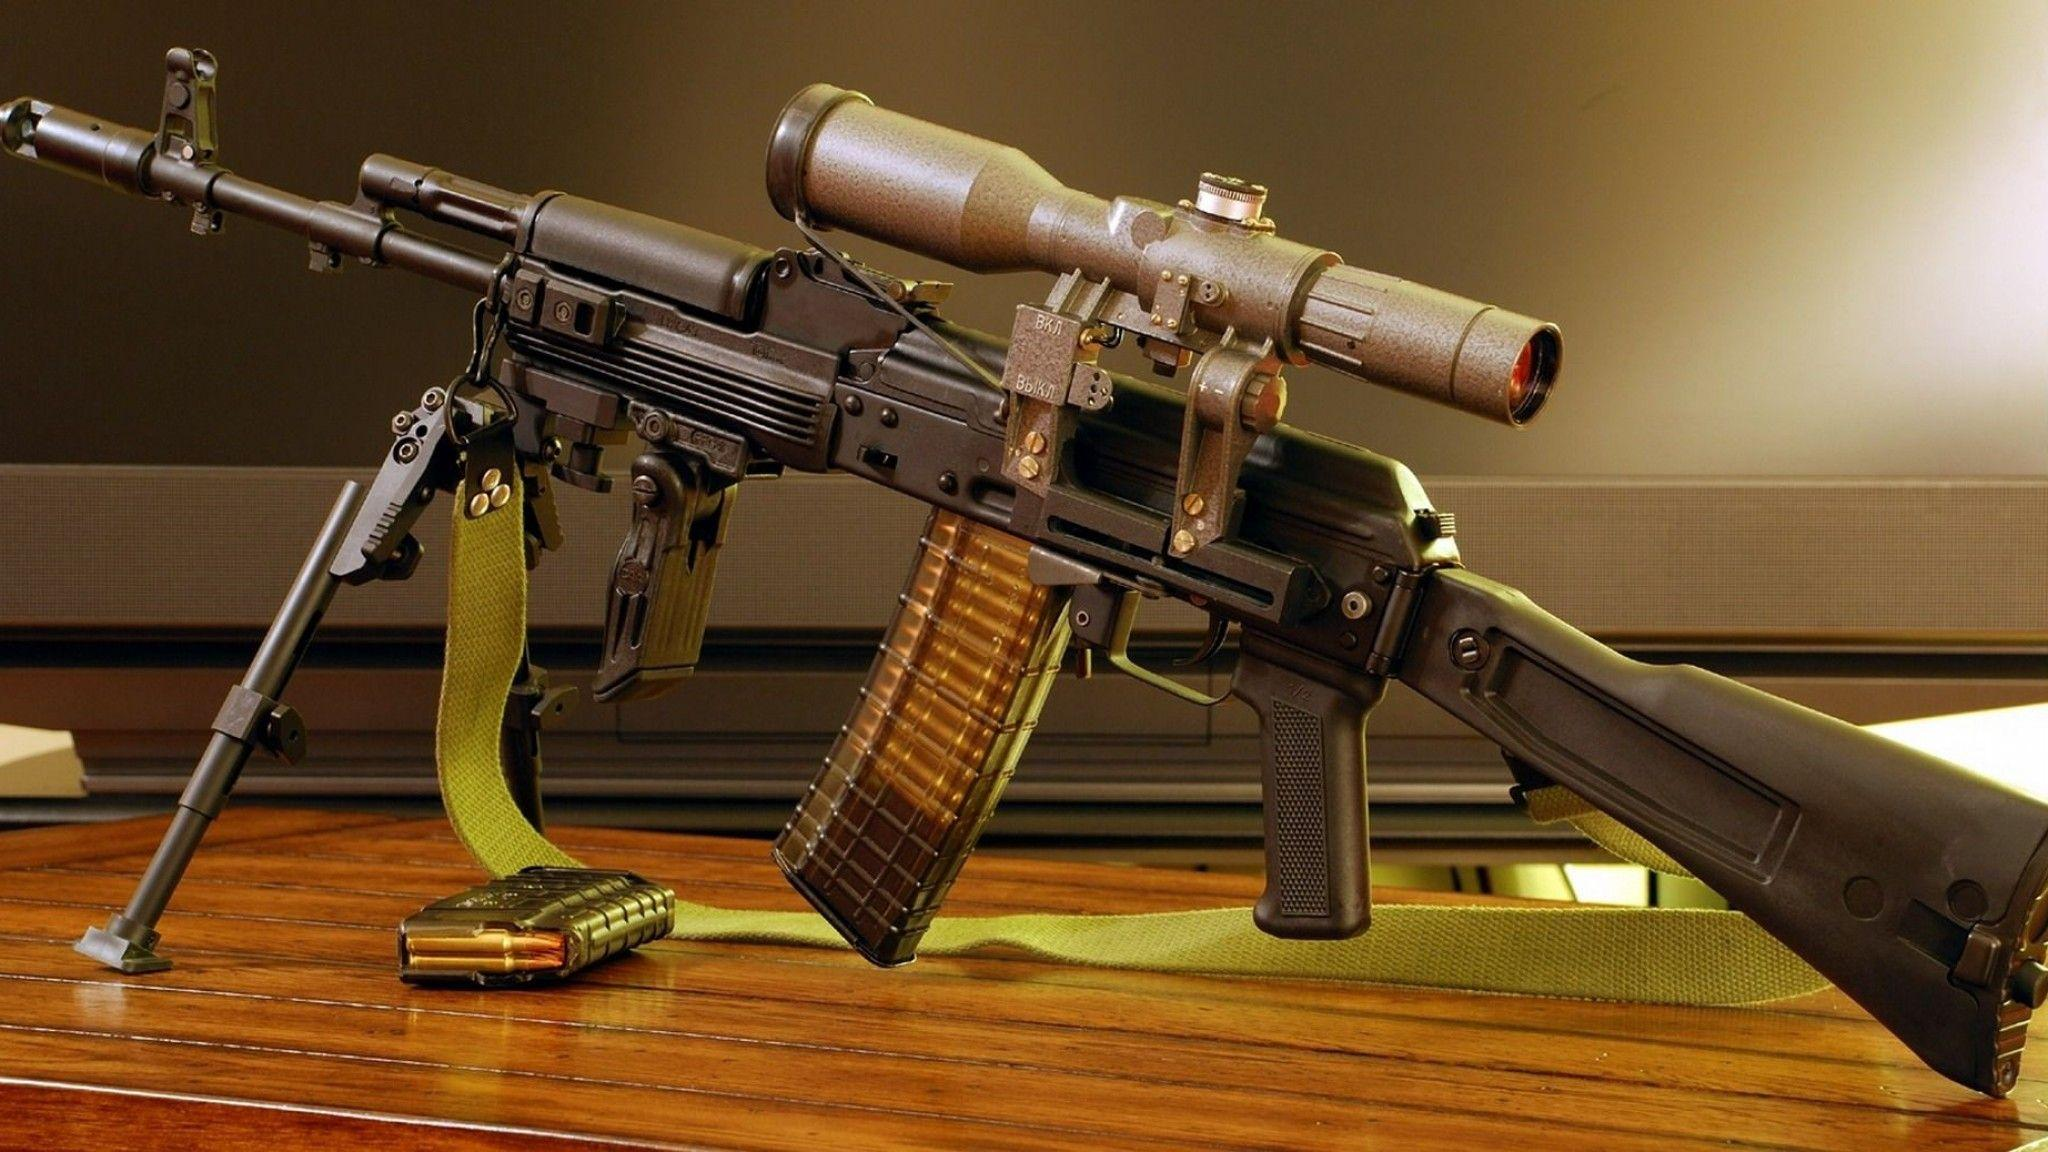 KALASHNIKOV AK 47 Weapon Gun Military Rifle Ammo H Wallpaper